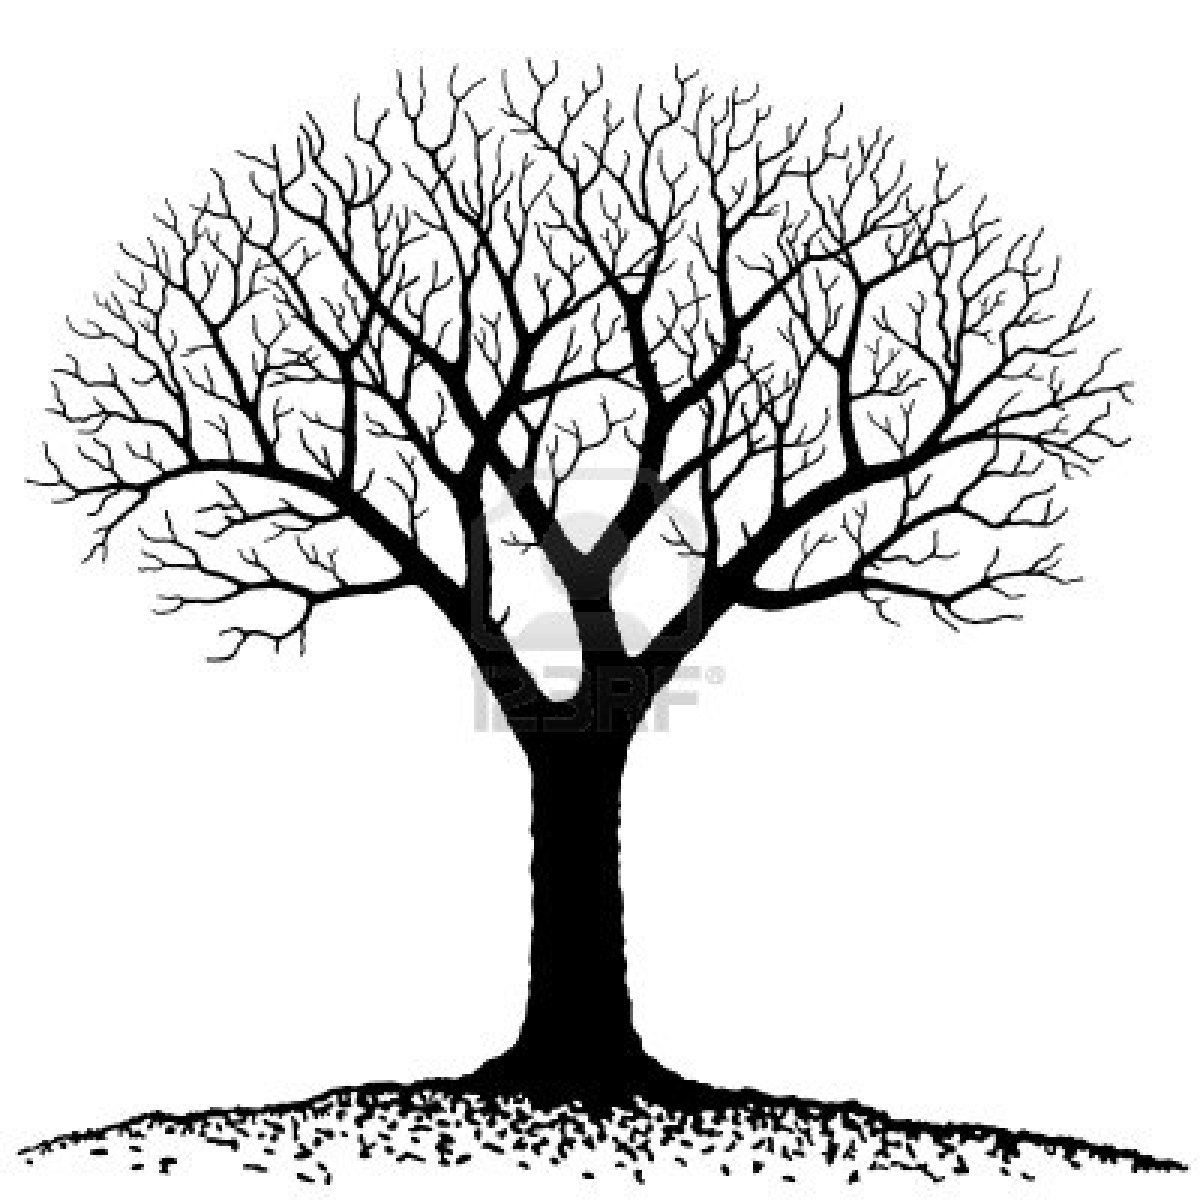 Bare oak tree clipart black and white image black and white download Stock Vector | Felting Inspiration | Bare tree, Tree silhouette ... image black and white download